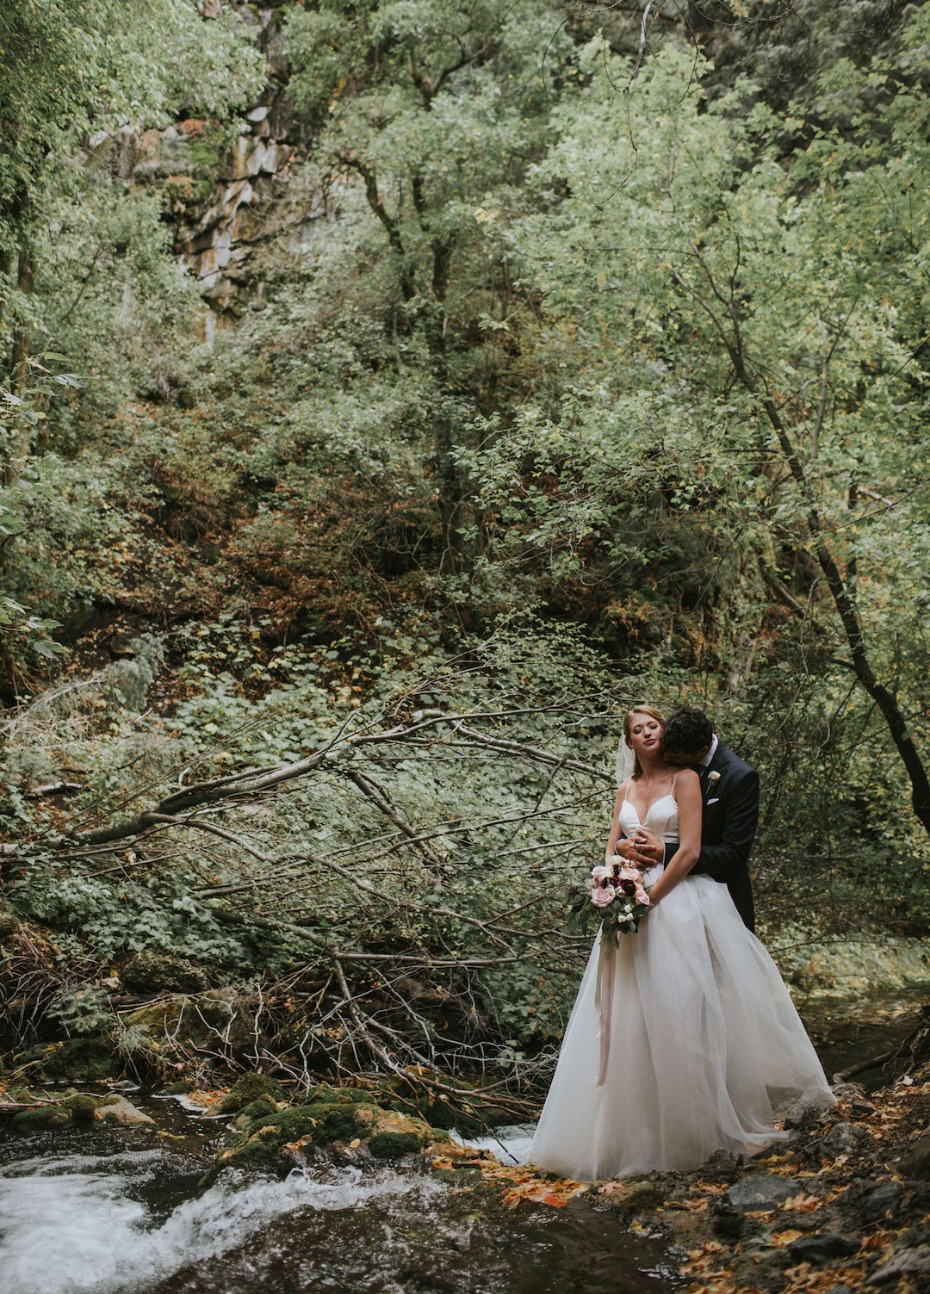 wedding photos in the woods